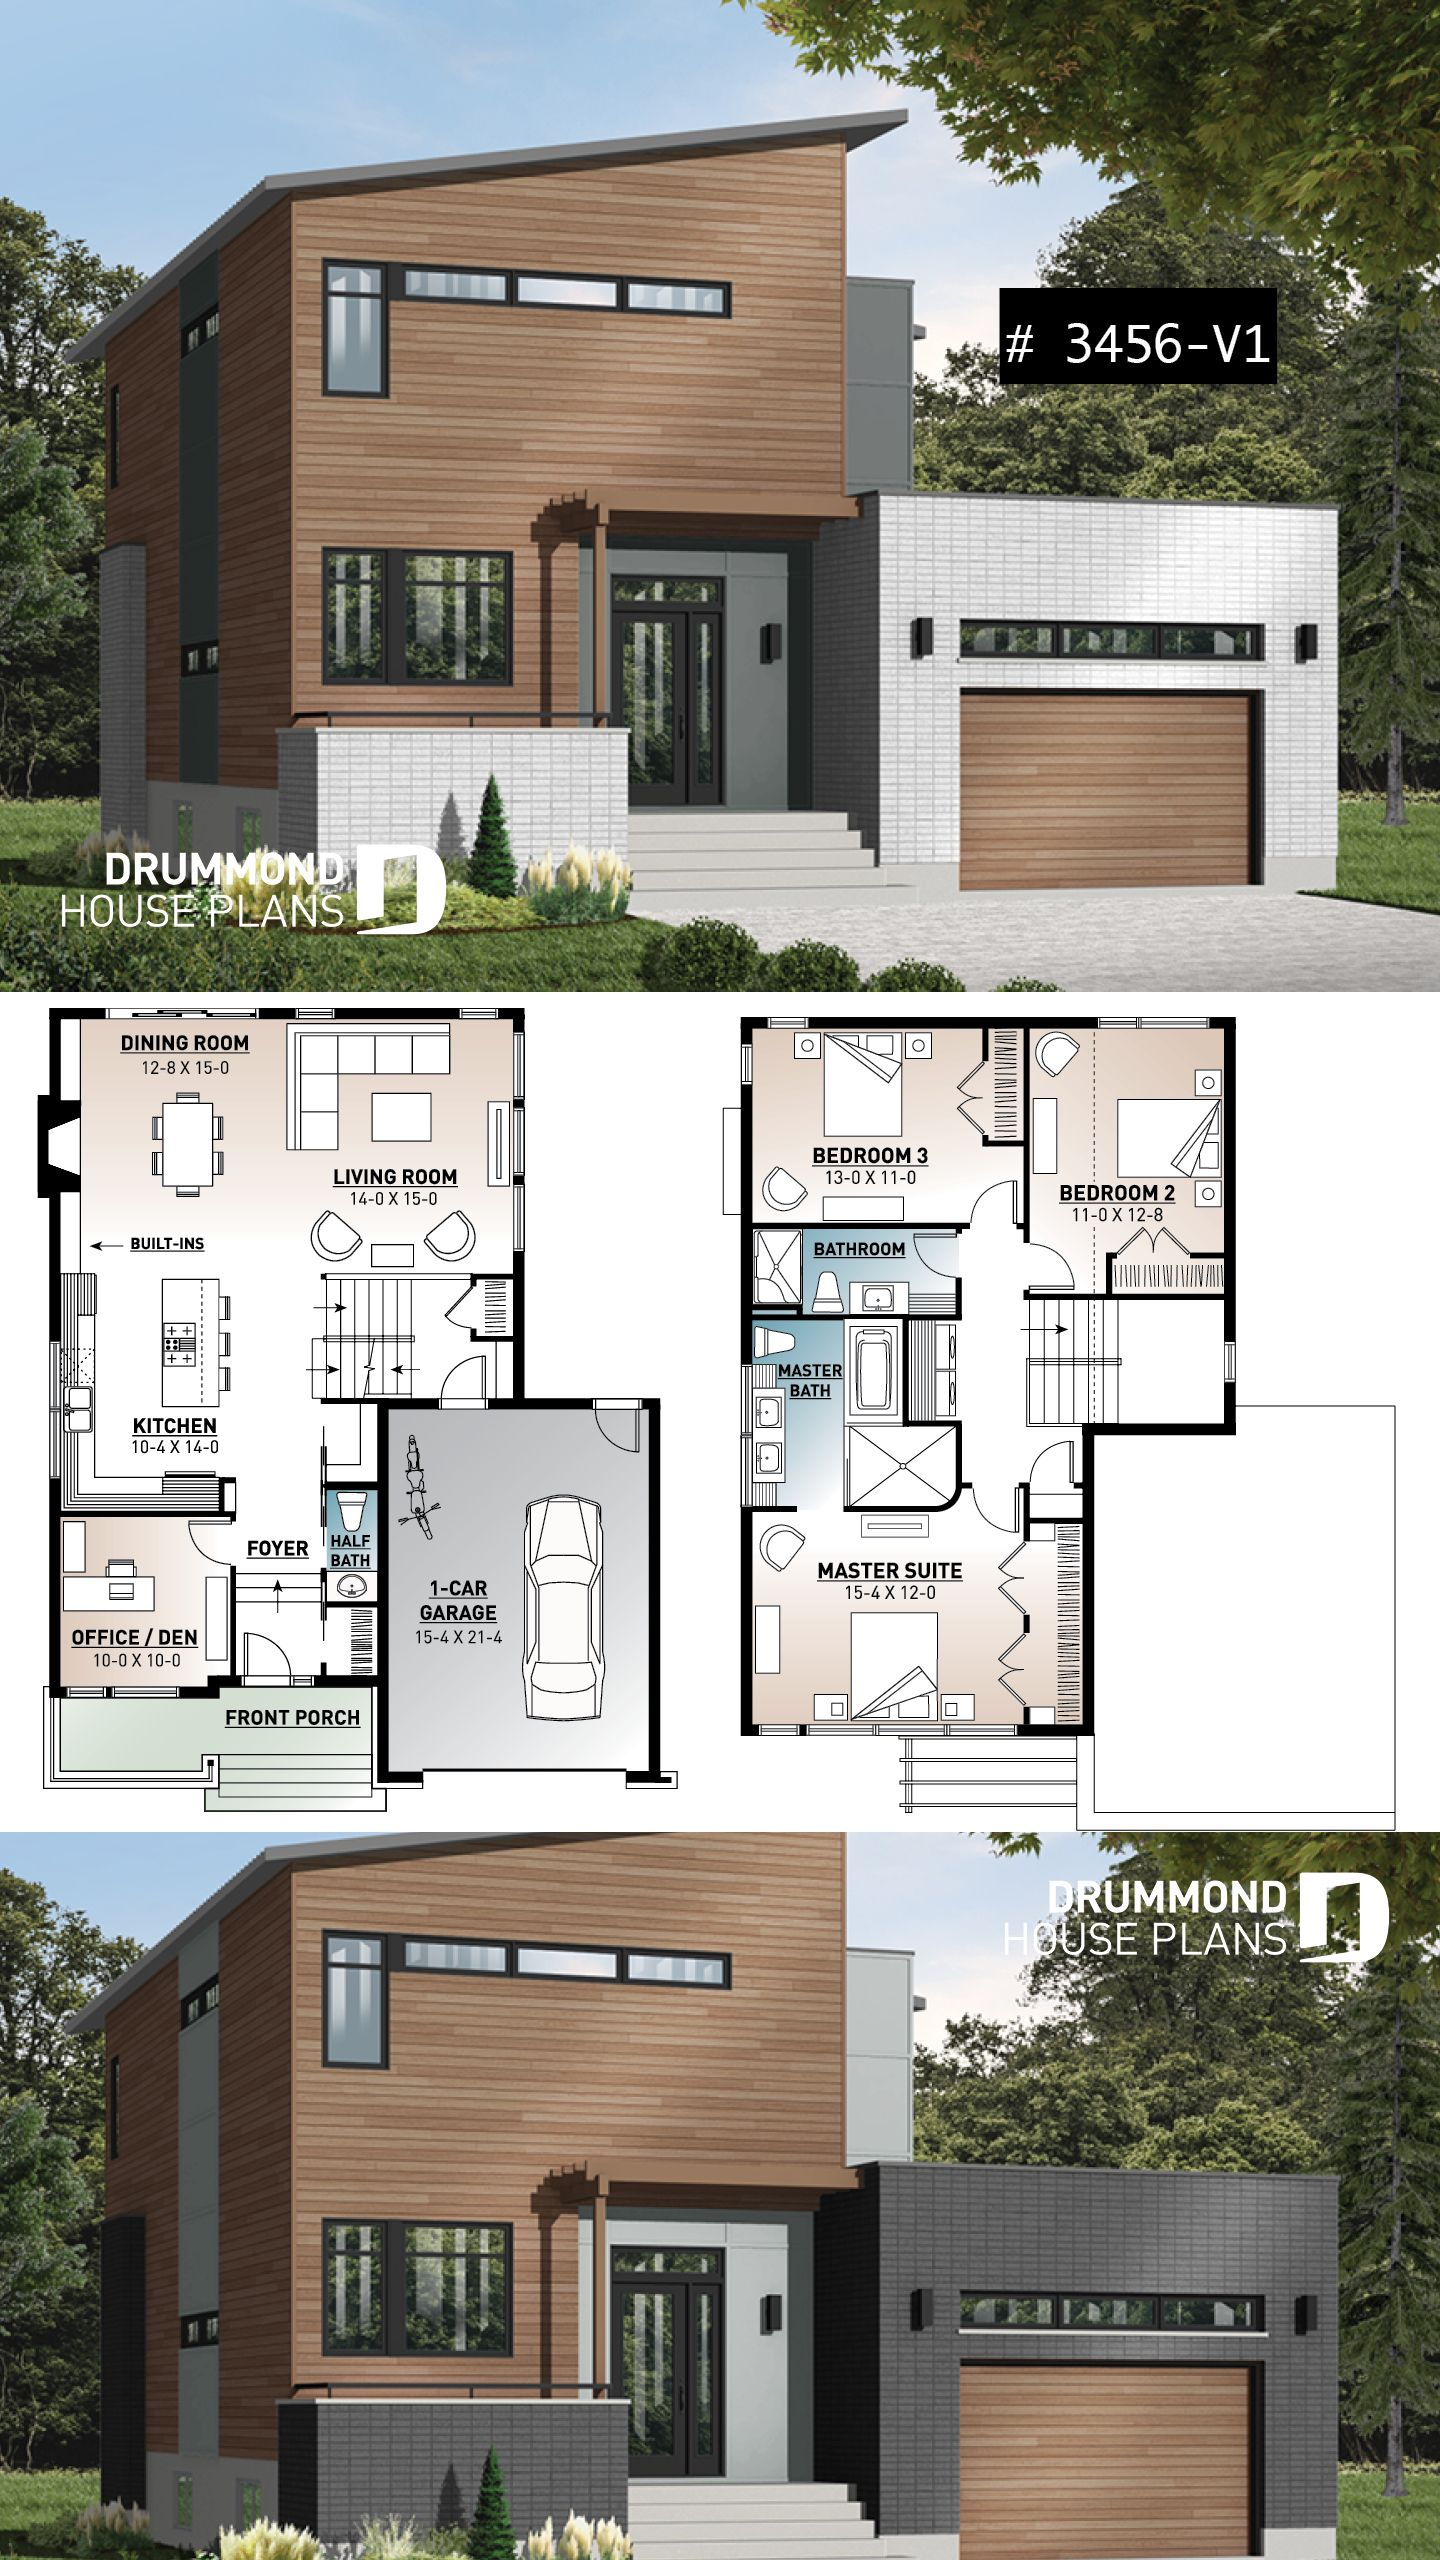 Discover The Plan 3456 V1 Sallinger 2 Which Will Please You For Its 3 4 Bedrooms And For Its Contemporary Styles Sims House Plans Contemporary House Plans House Layout Plans